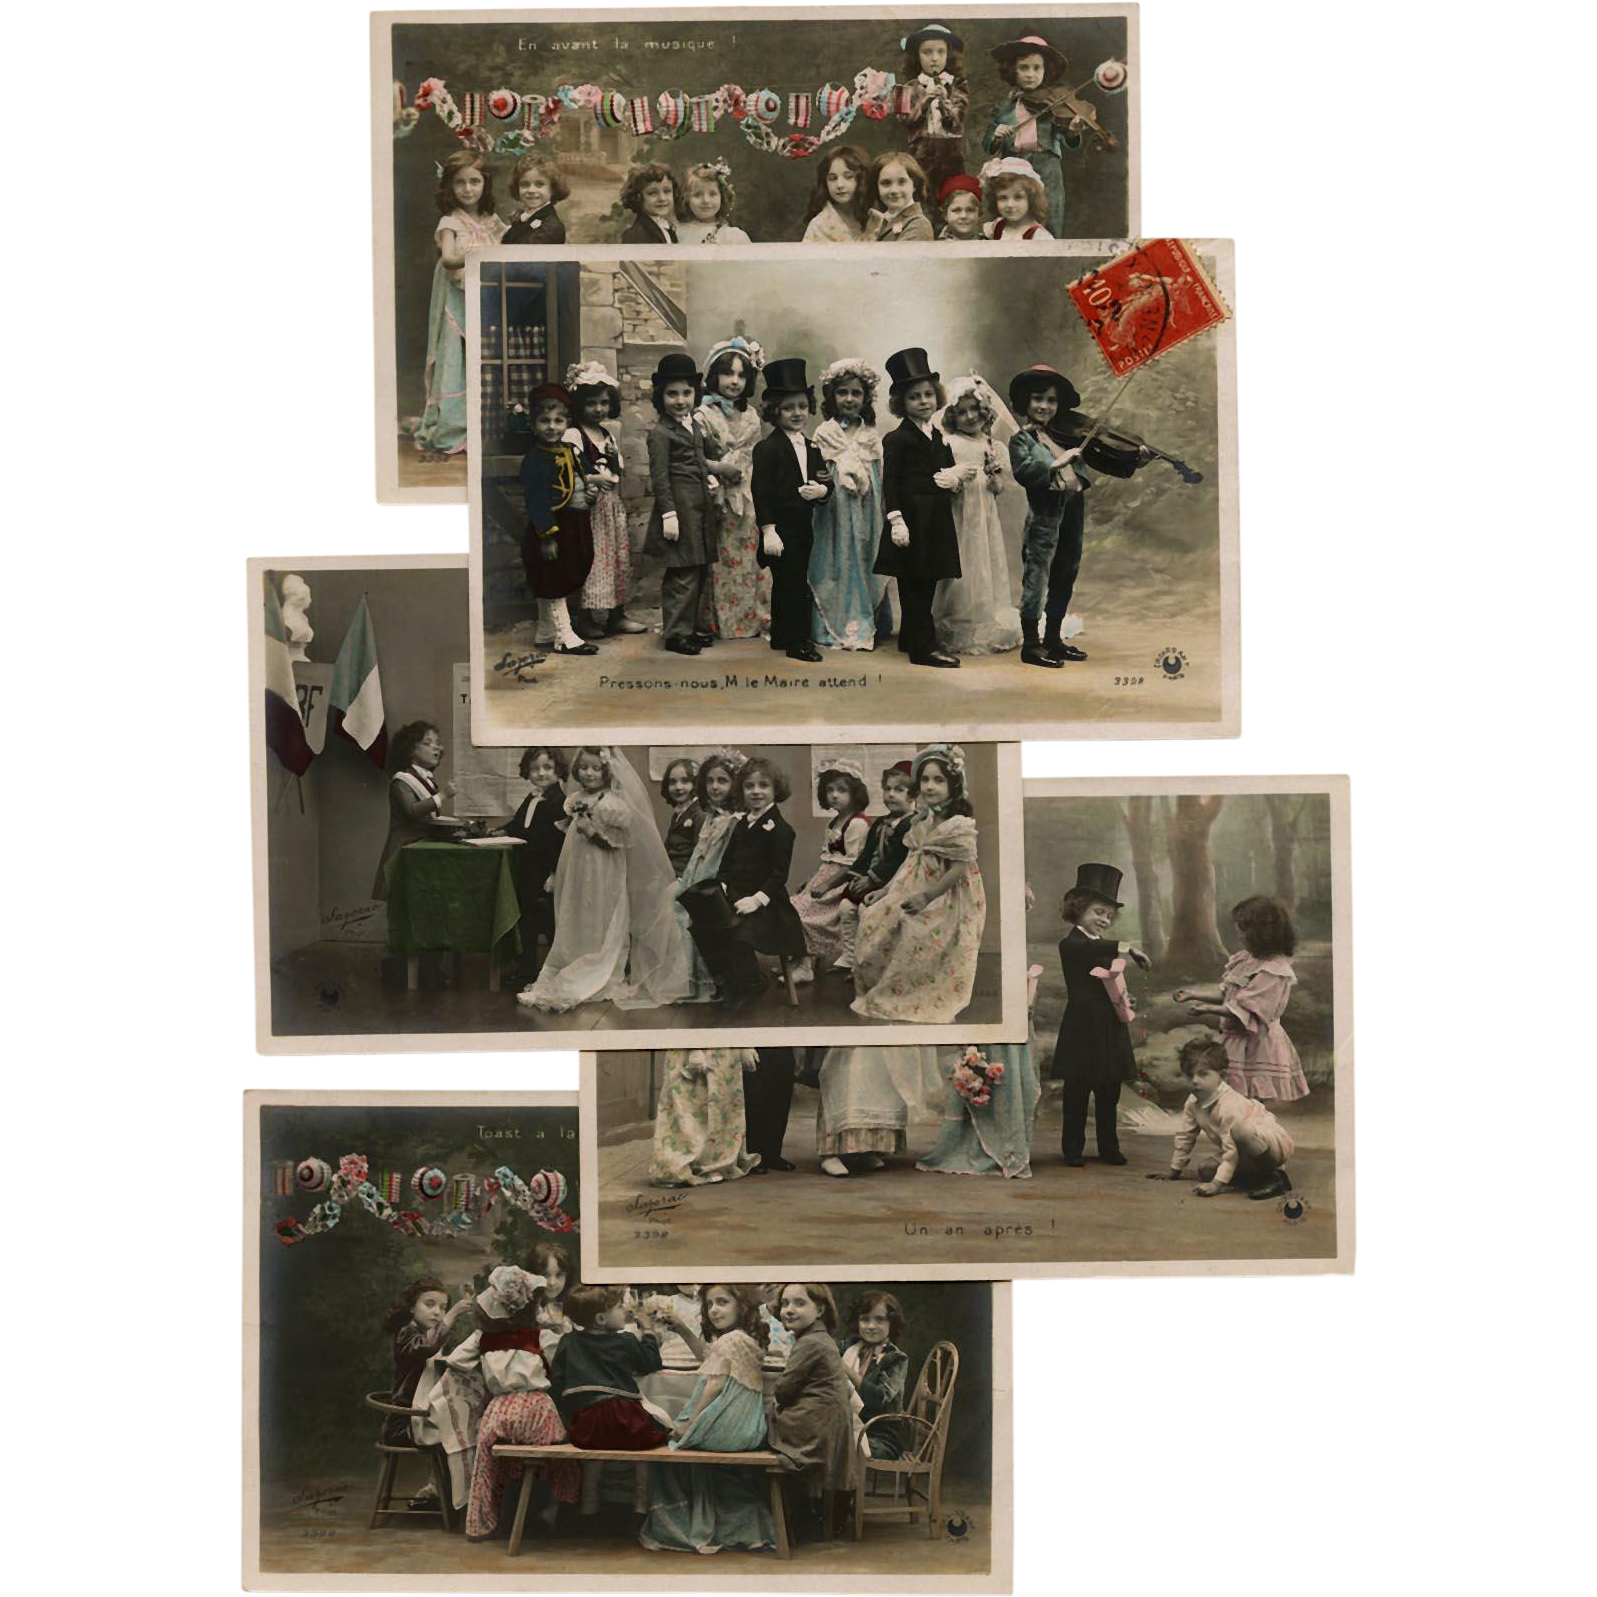 Edwardian Children as Grown Up Wedding Party Series of 5 Antique French Postcards Real Photos Hand Painted